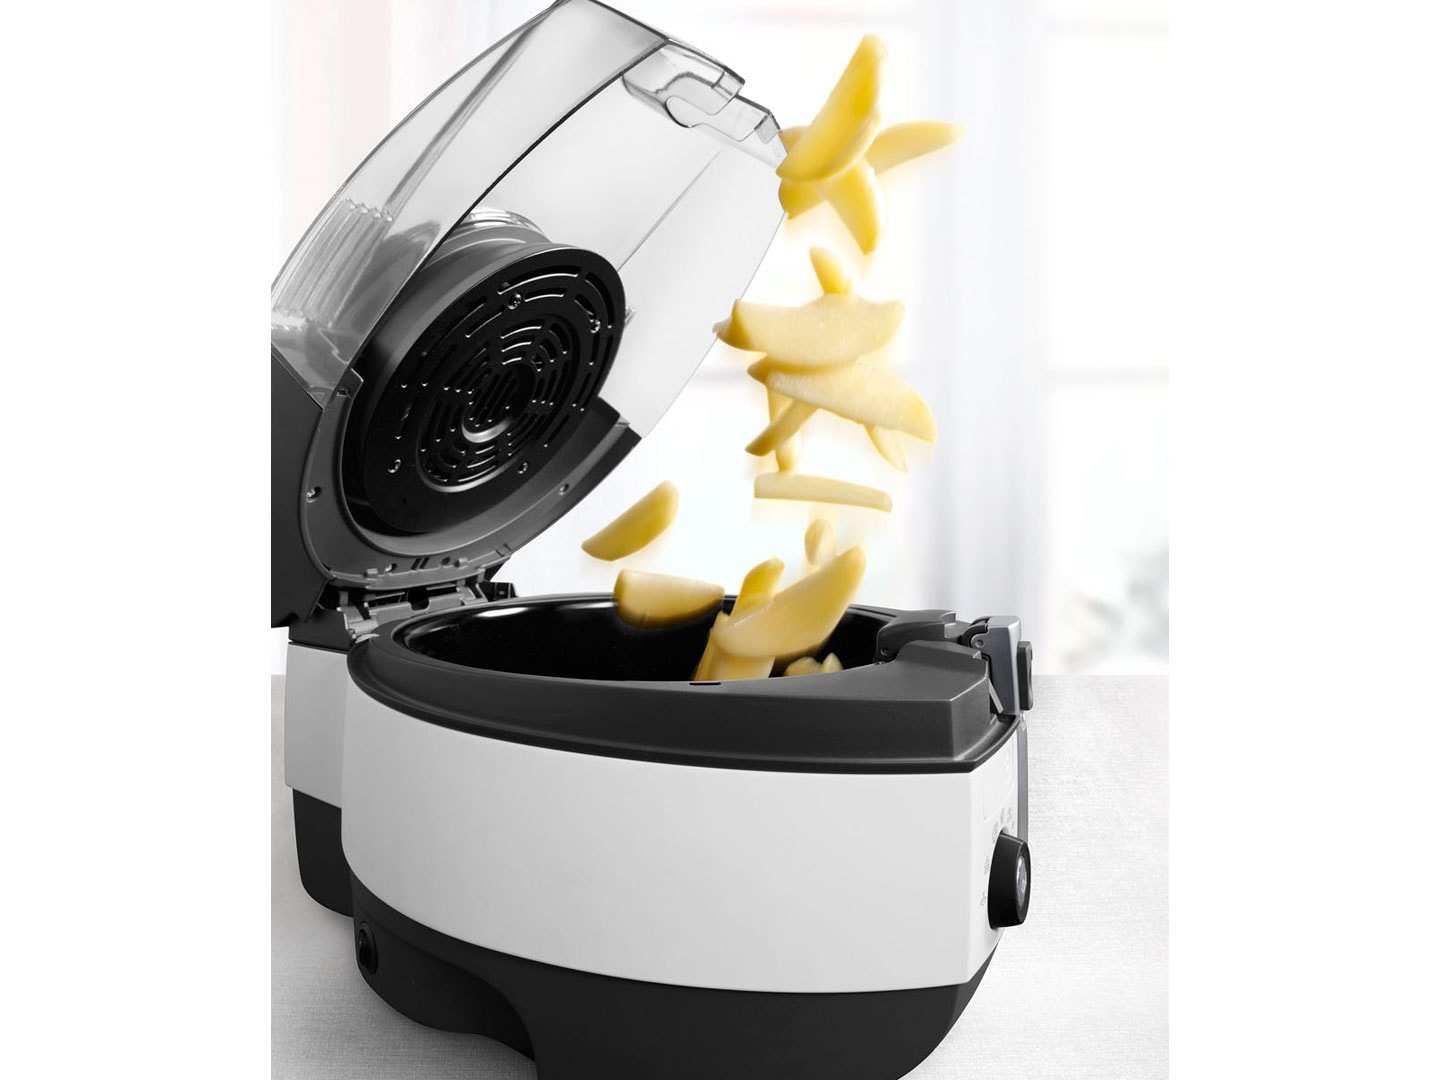 DeLonghi Low-Oil air fryer and Multicooker Extra Chef FH1394